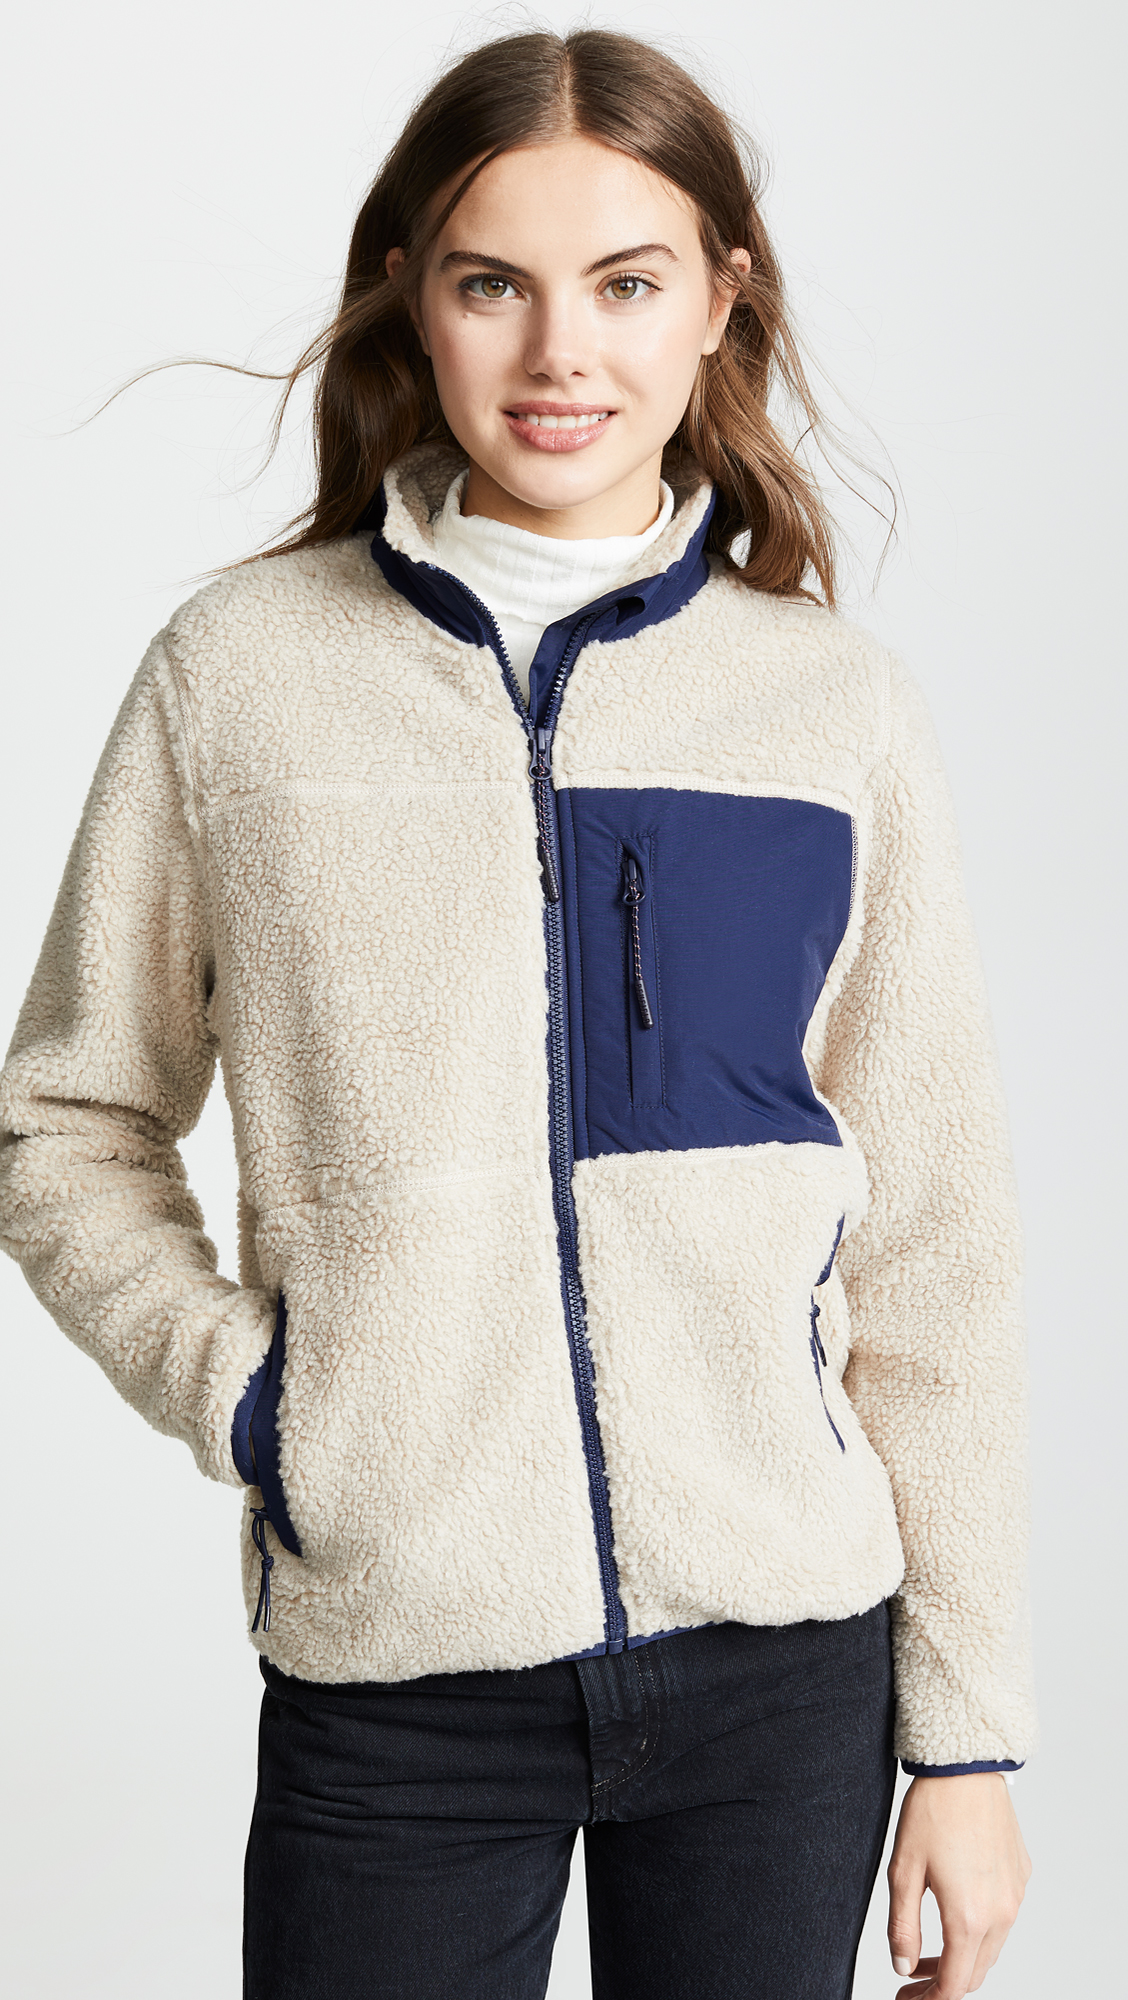 Penfield Mattawa Fleece Jacket Women's Navy Blue White